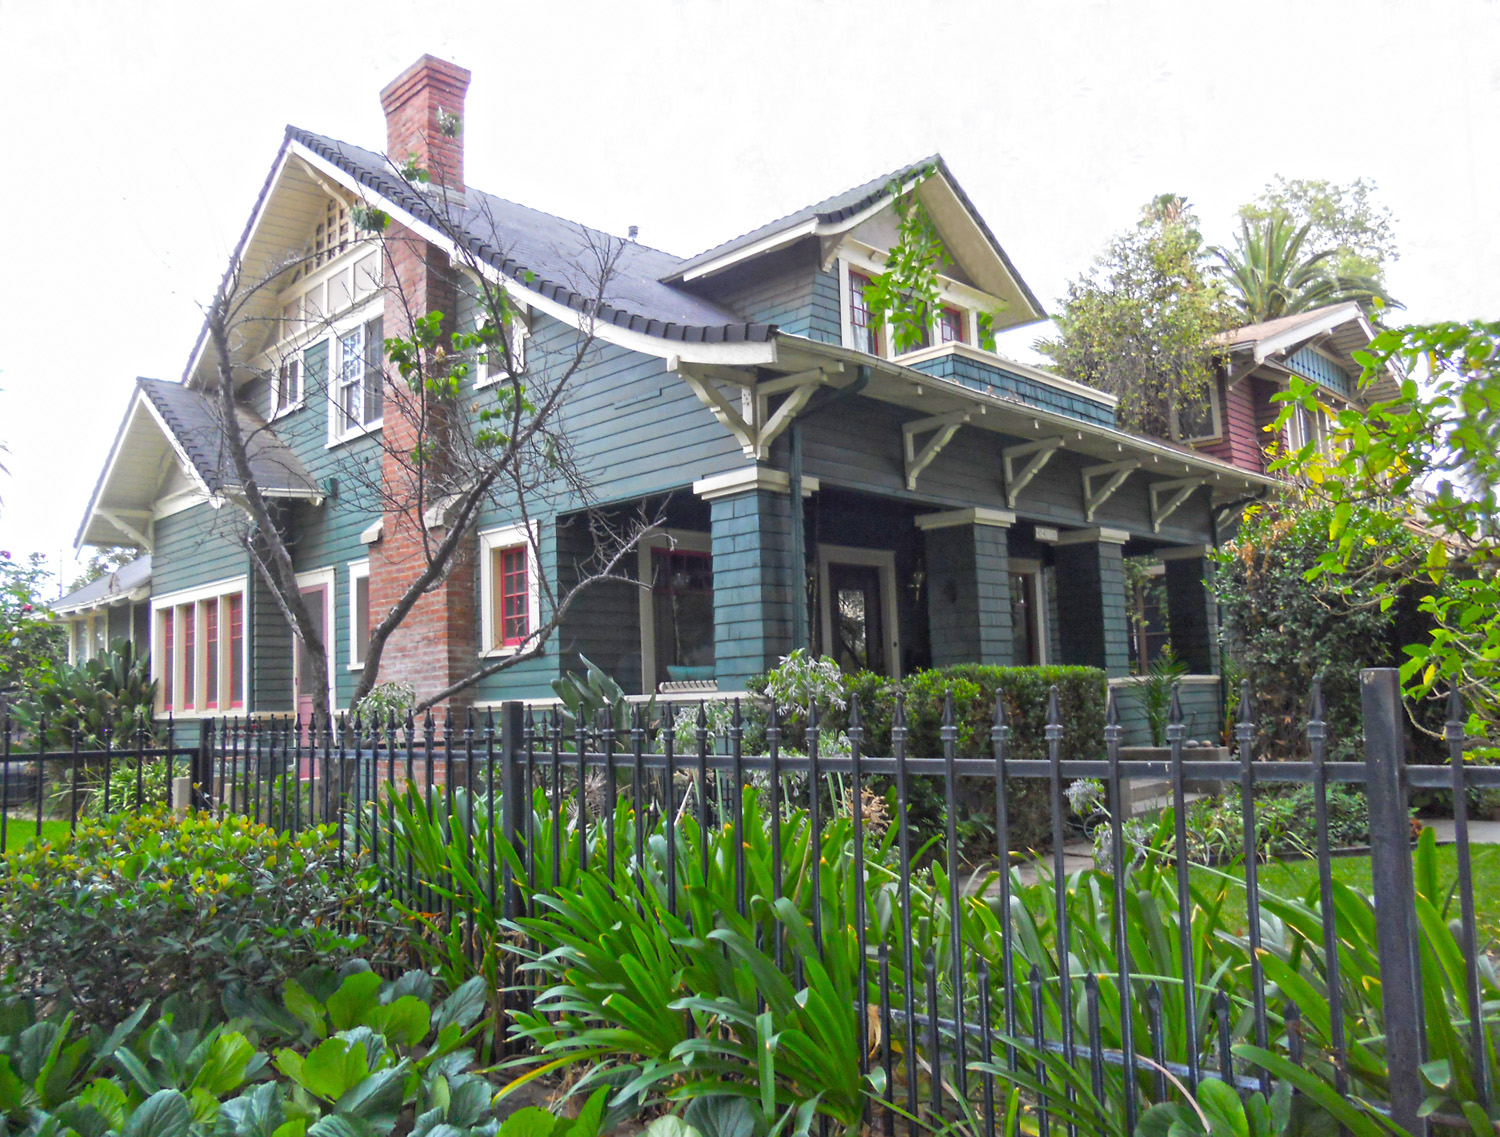 """4415 Mission Inn Avenue, Riverside CA 92501 listed by """"The Sister Team"""""""